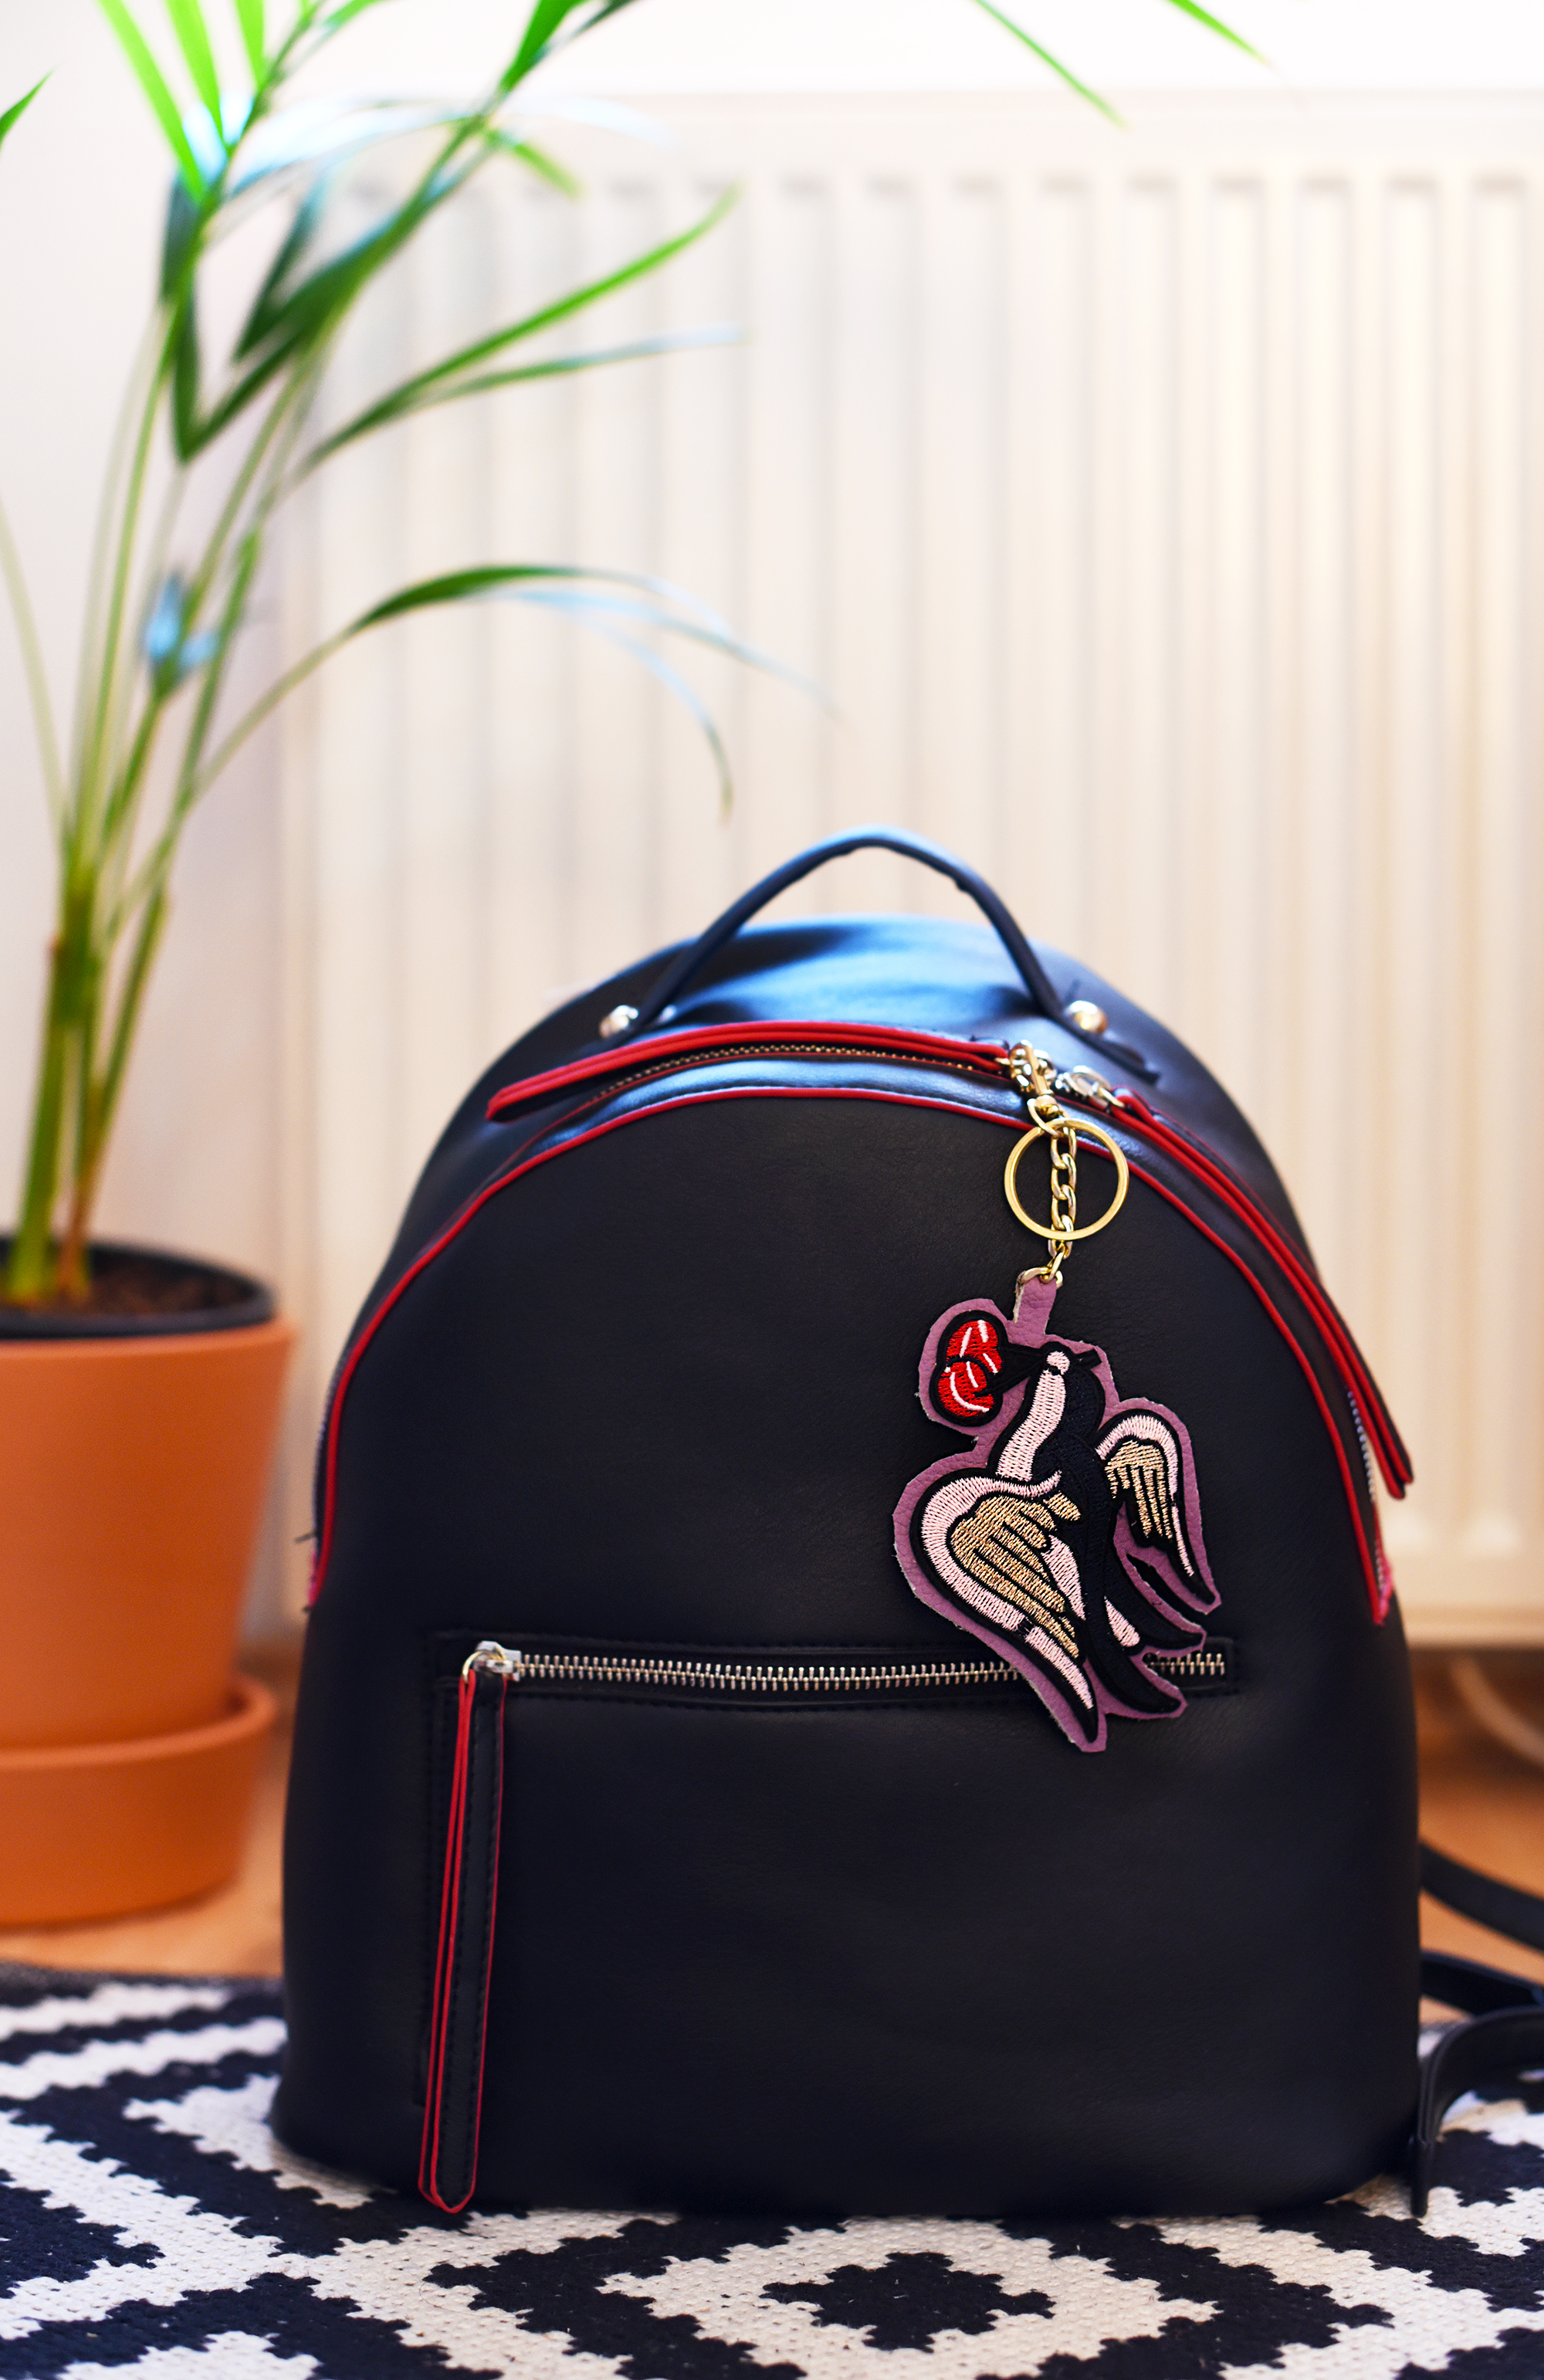 patch-leather-keychain-bird-on-backpack